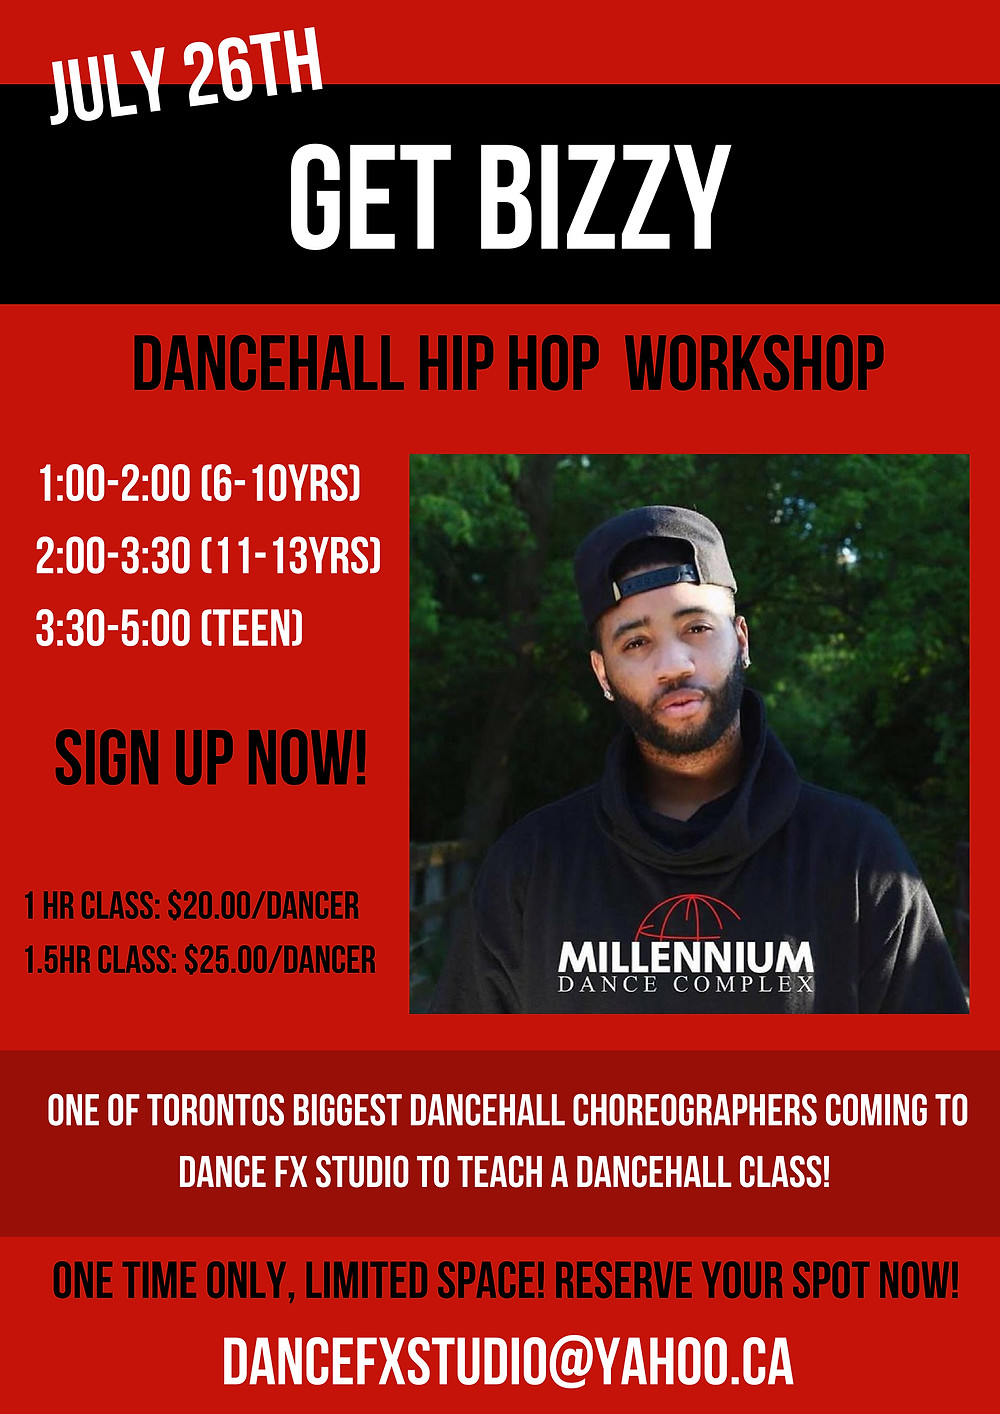 CALLING ALL HHOP and Dancehall lovers......Don't miss a chance to dance with the famous BIZZY at DFX!!!  Contact to register.  Spread the word, bring a friend....!